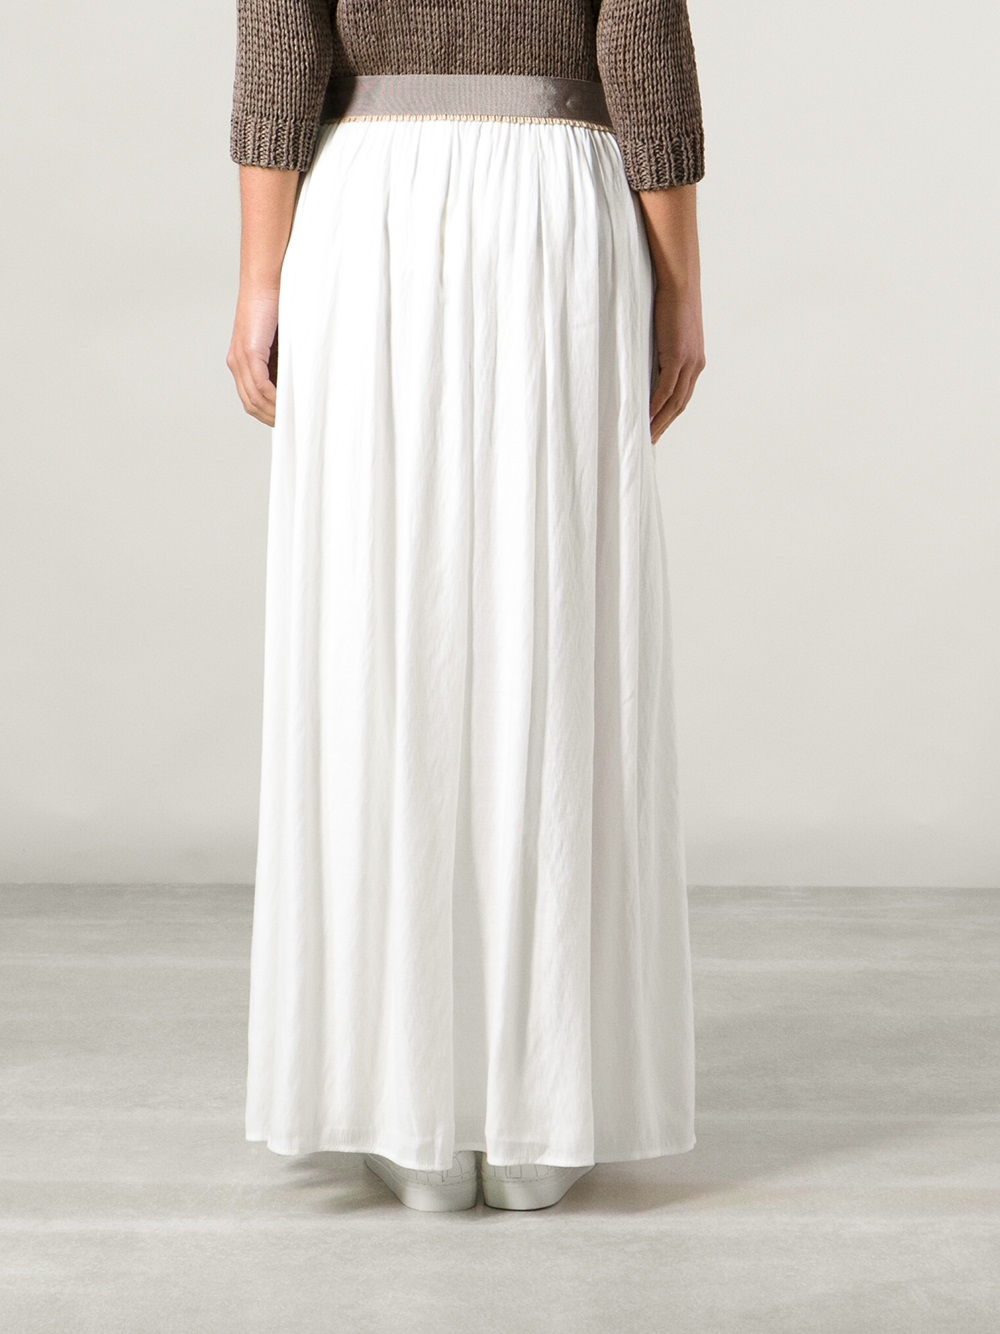 Long White Pleated Skirt